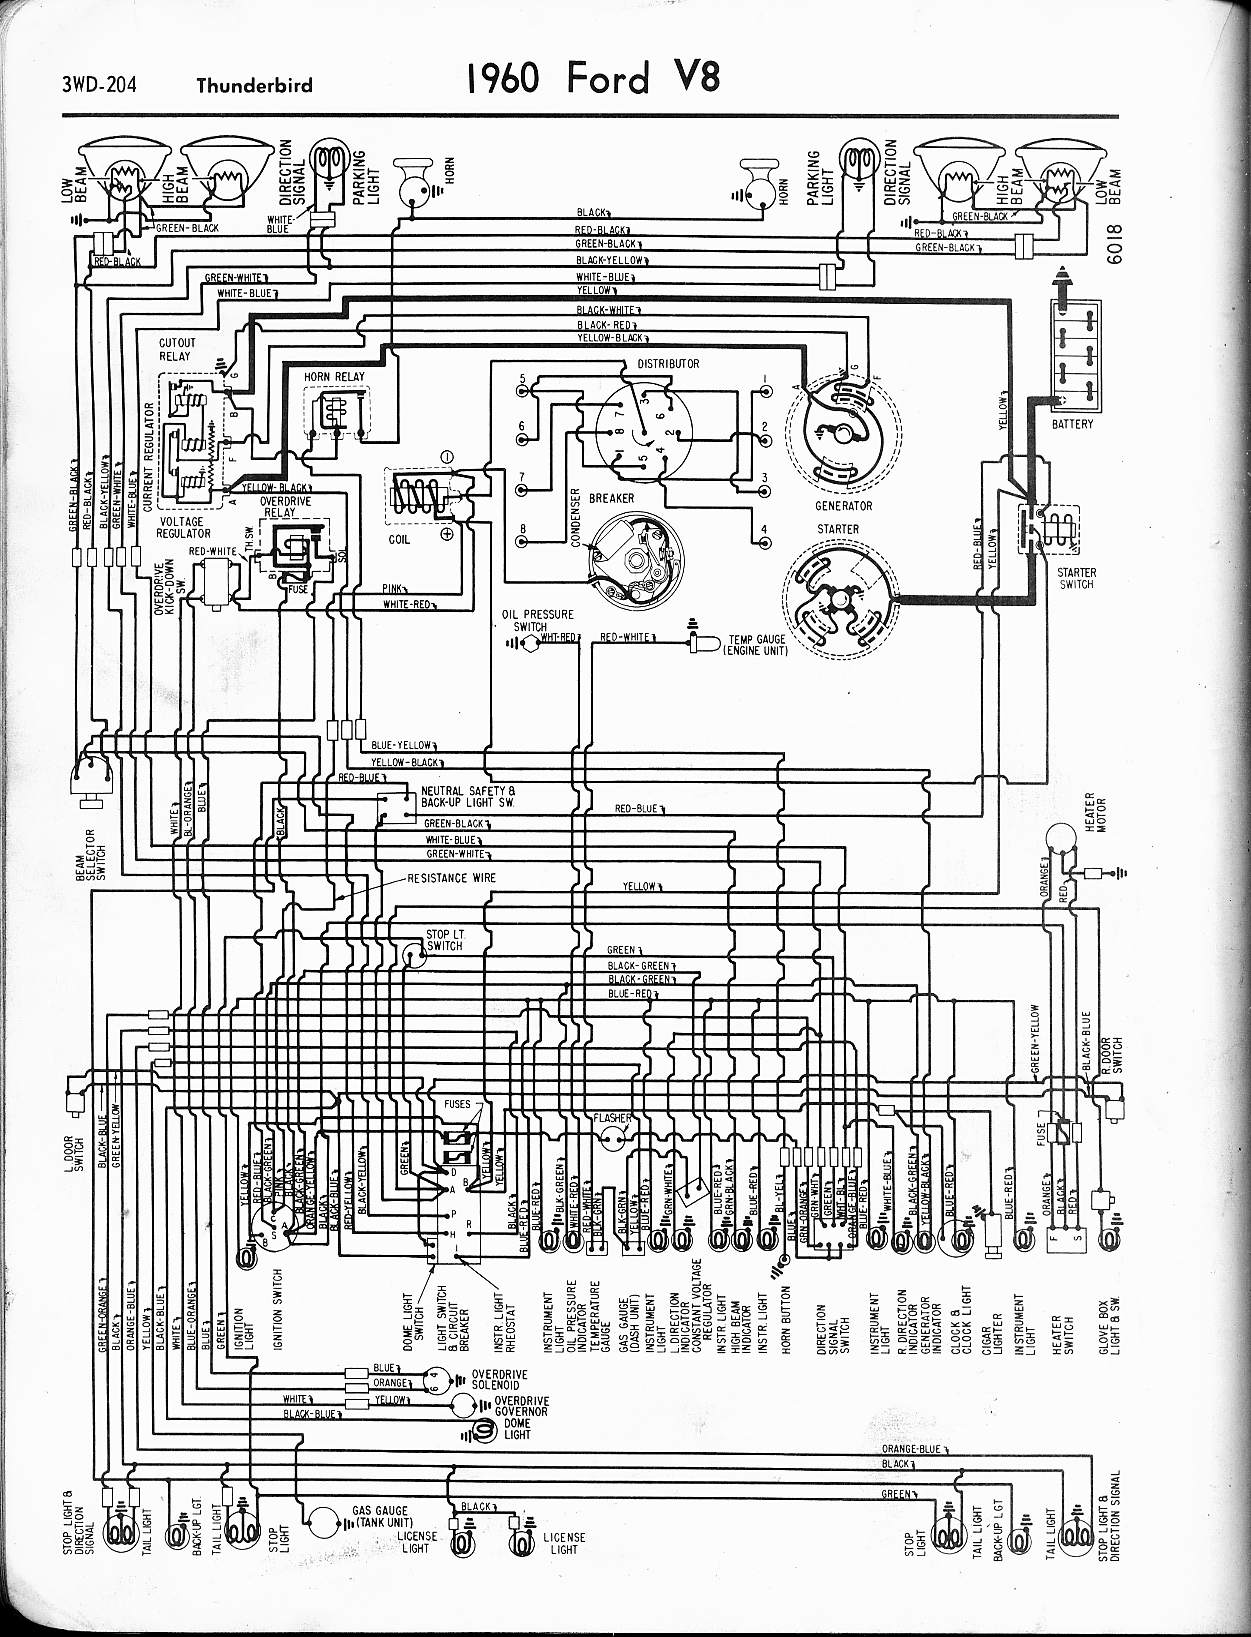 1965 thunderbird wiring diagram wiring diagrams 1968 Ford Thunderbird 57 65 ford wiring diagrams1965 thunderbird wiring diagram 2